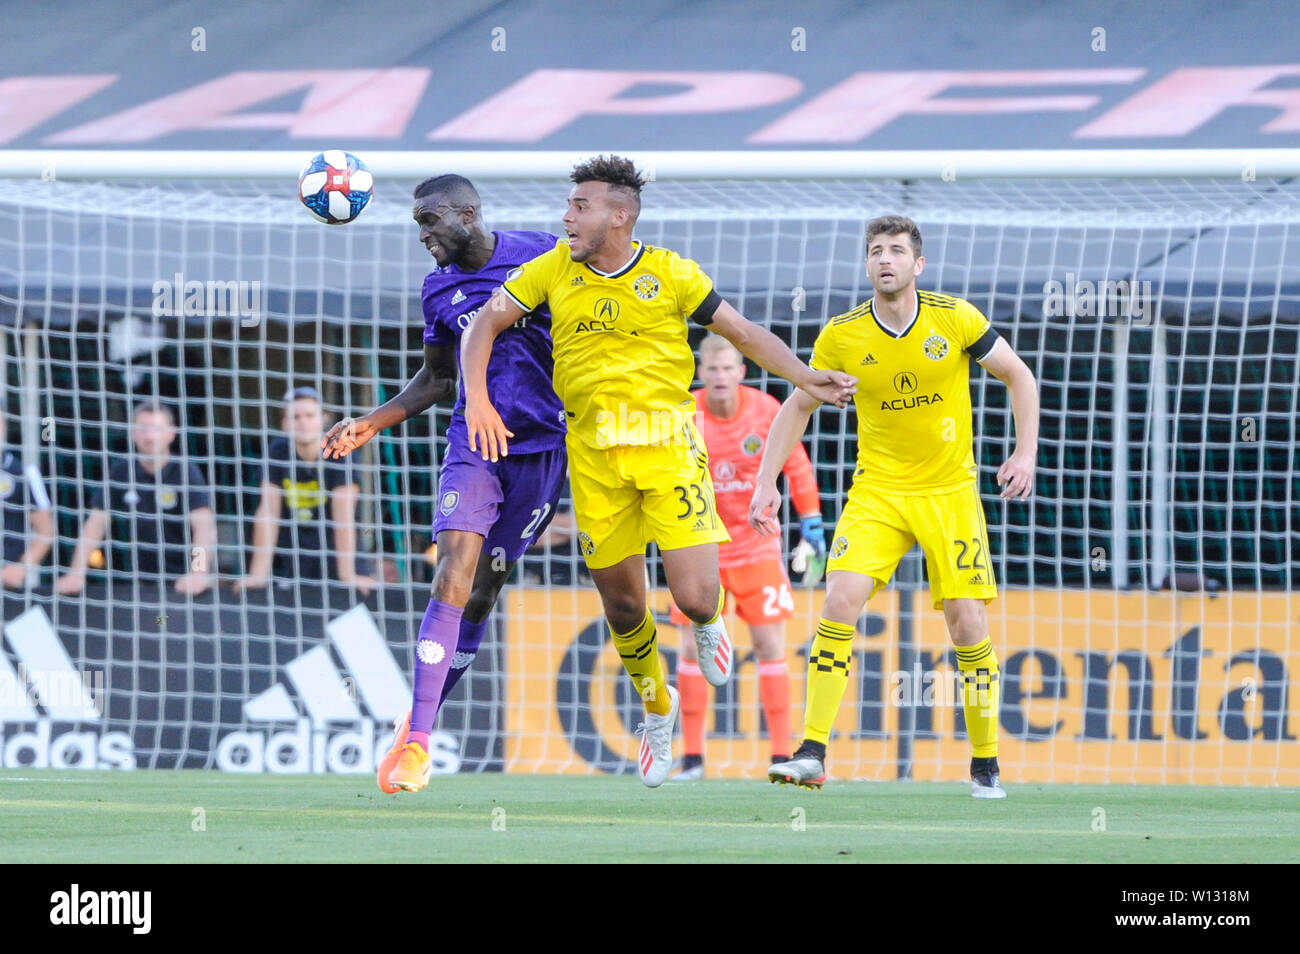 Saturday, June 29, 2019: Orlando City defender Lamine Sane (22) and Columbus Crew SC forward JJ Williams (33) battle for the ball in the first half of the match between Orlando City and Columbus Crew SC at MAPFRE Stadium, in Columbus OH. Mandatory Photo Credit: Dorn Byg/Cal Sport Media. Orlando City 1 - Columbus Crew SC 0 after the first half Stock Photo